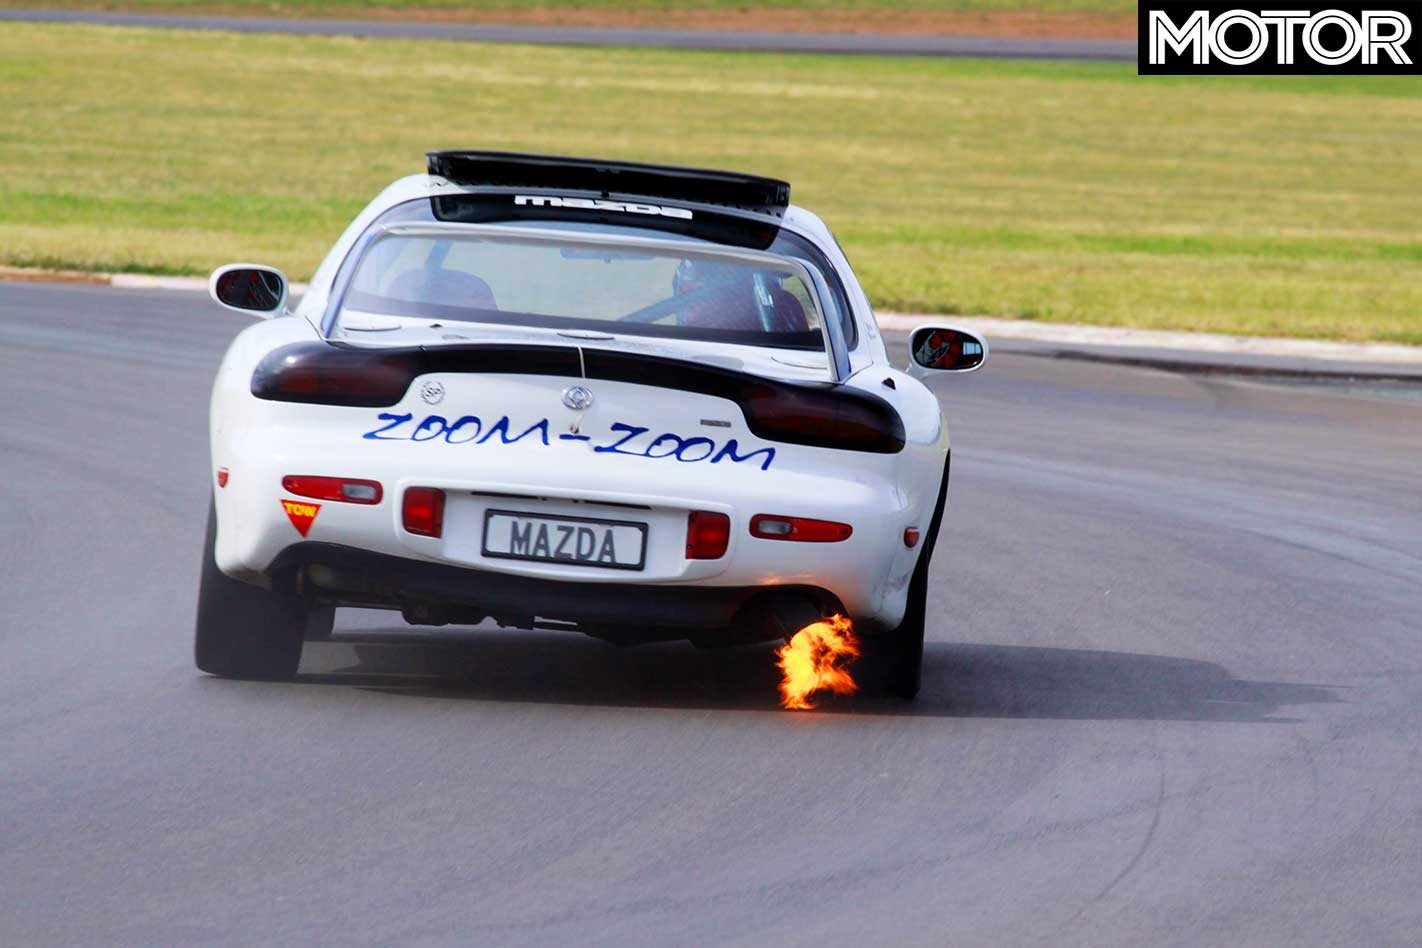 1995 Mazda Rx 7 Sp Quick Review Classic Motor 3 0 Engine Diagram Its Been Several Years Since The 7s 235 45zr17 Bridgestone Semi Slicks Have Even Remotely Warm So My First Half Dozen Laps Concentrate On Getting